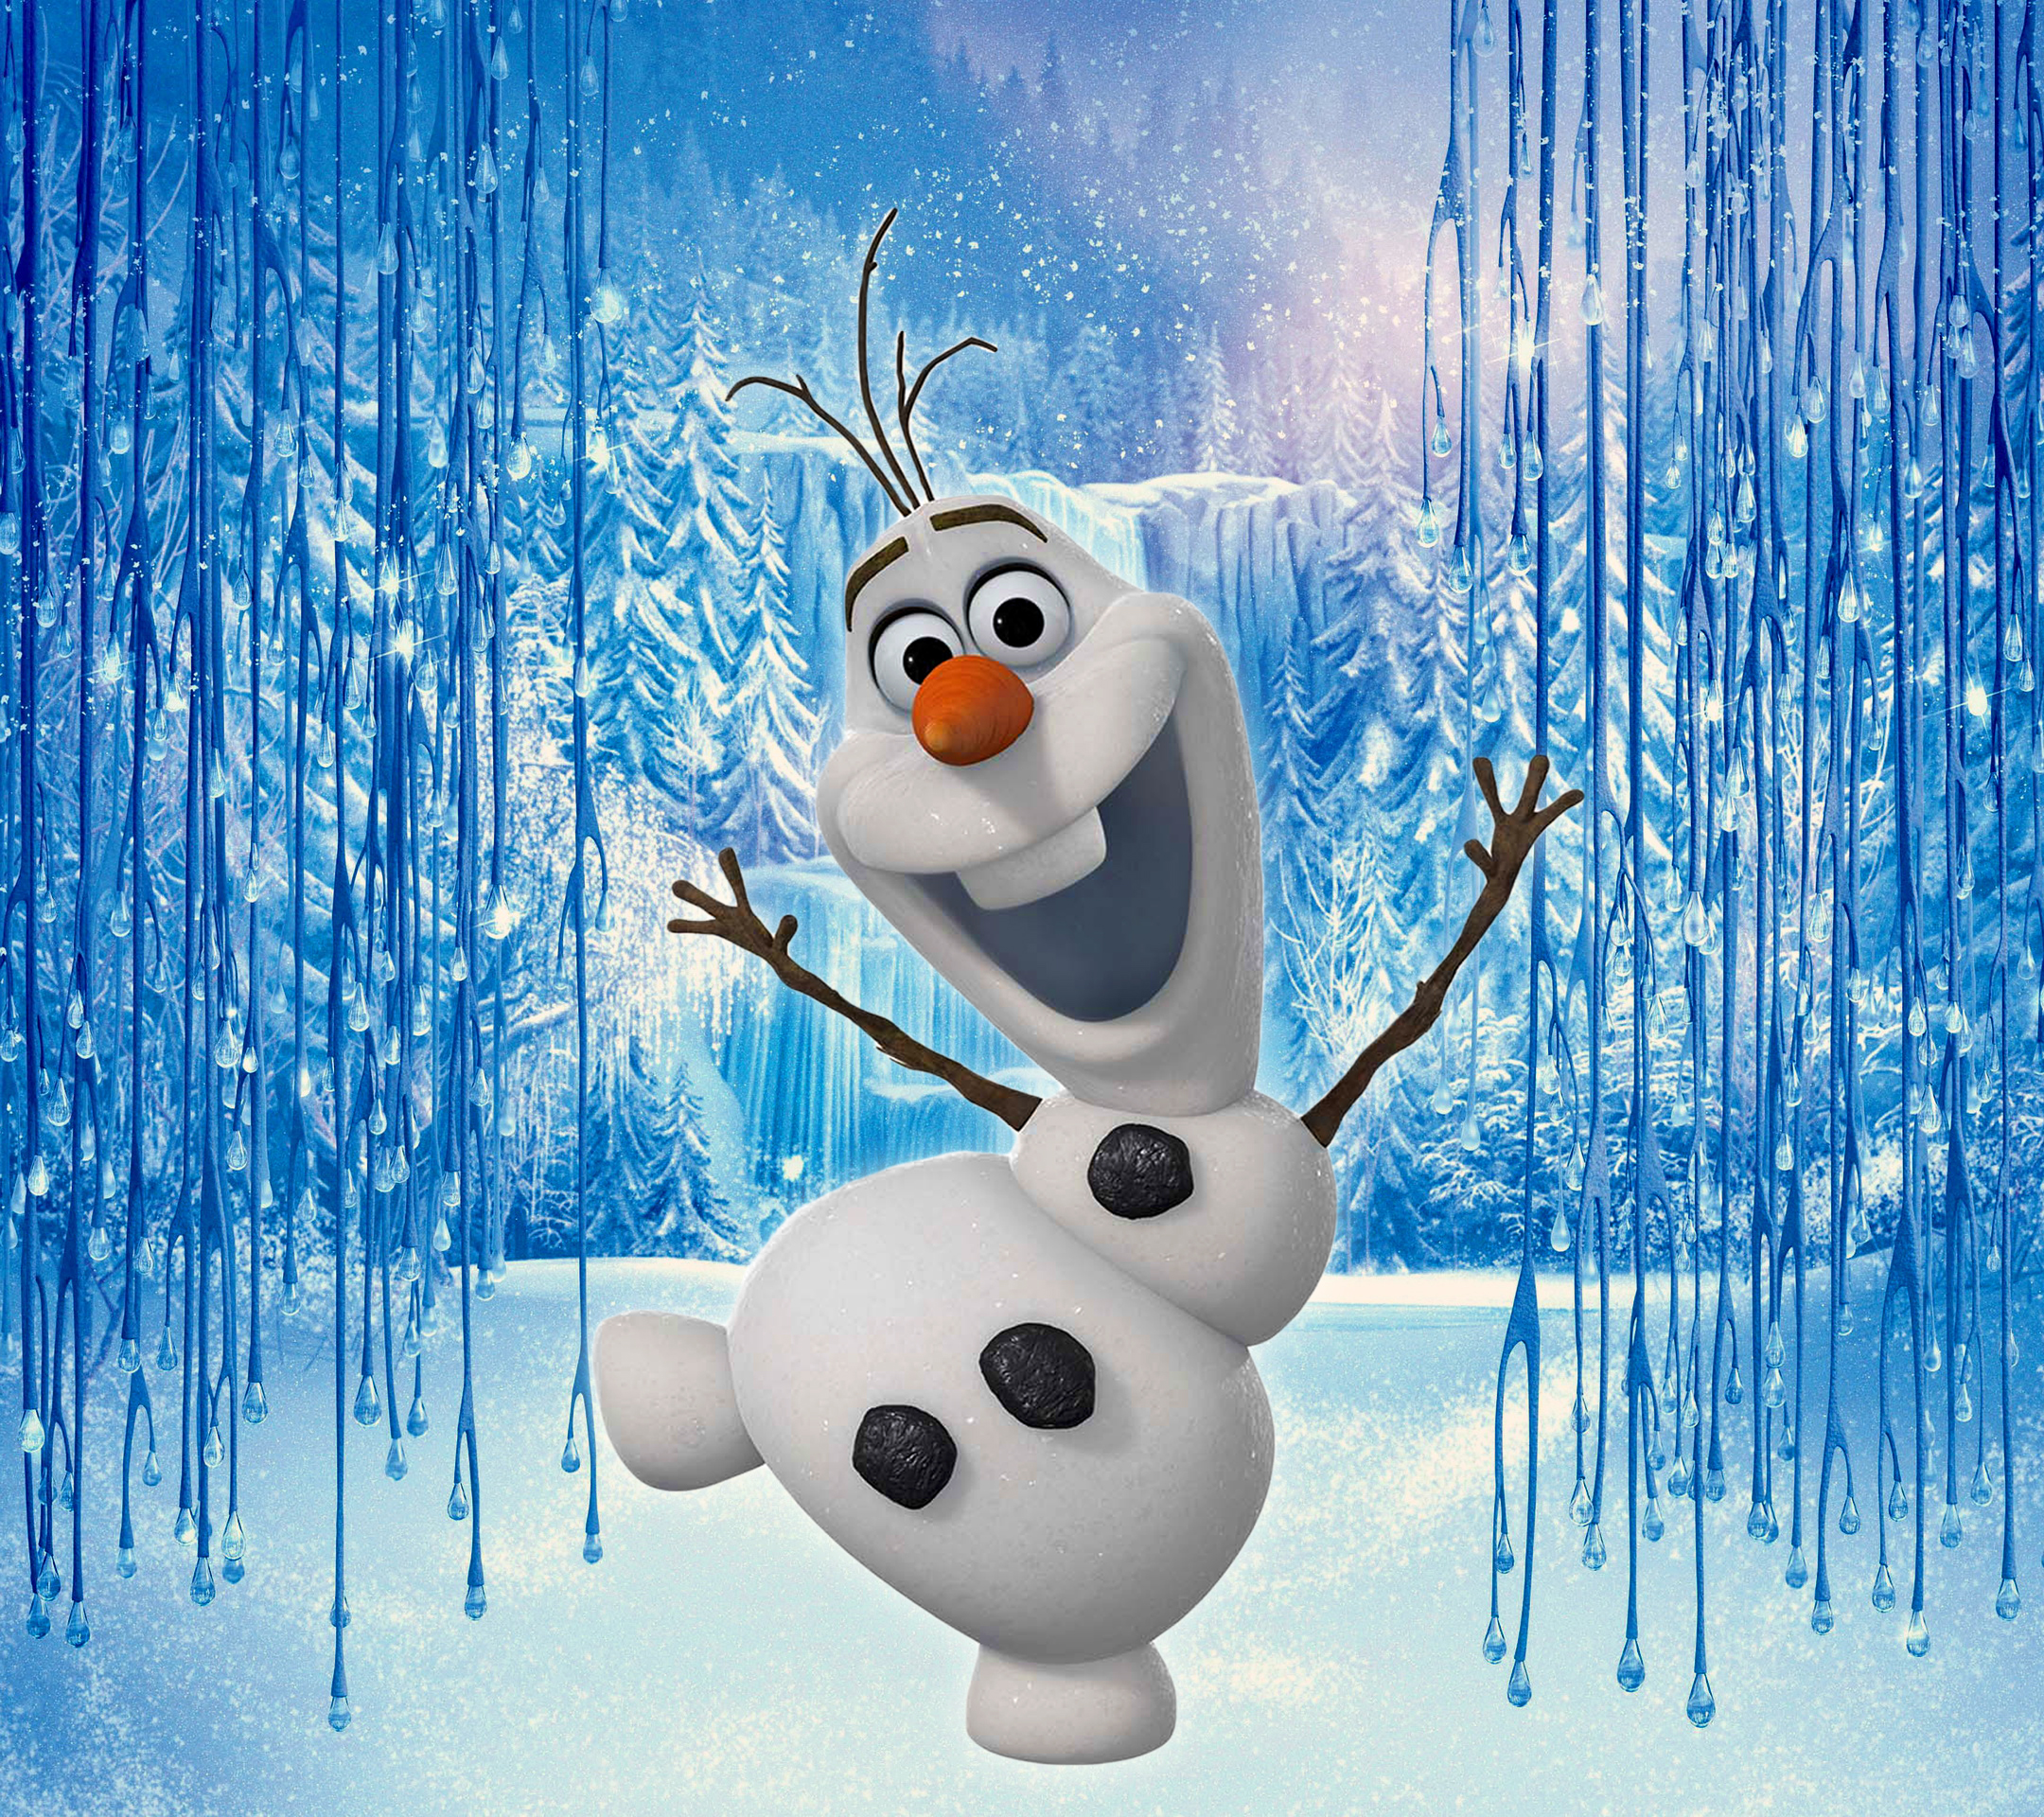 Olaf 39 s frozen adventure wallpapers high quality download free - Olaf s frozen adventure download ...